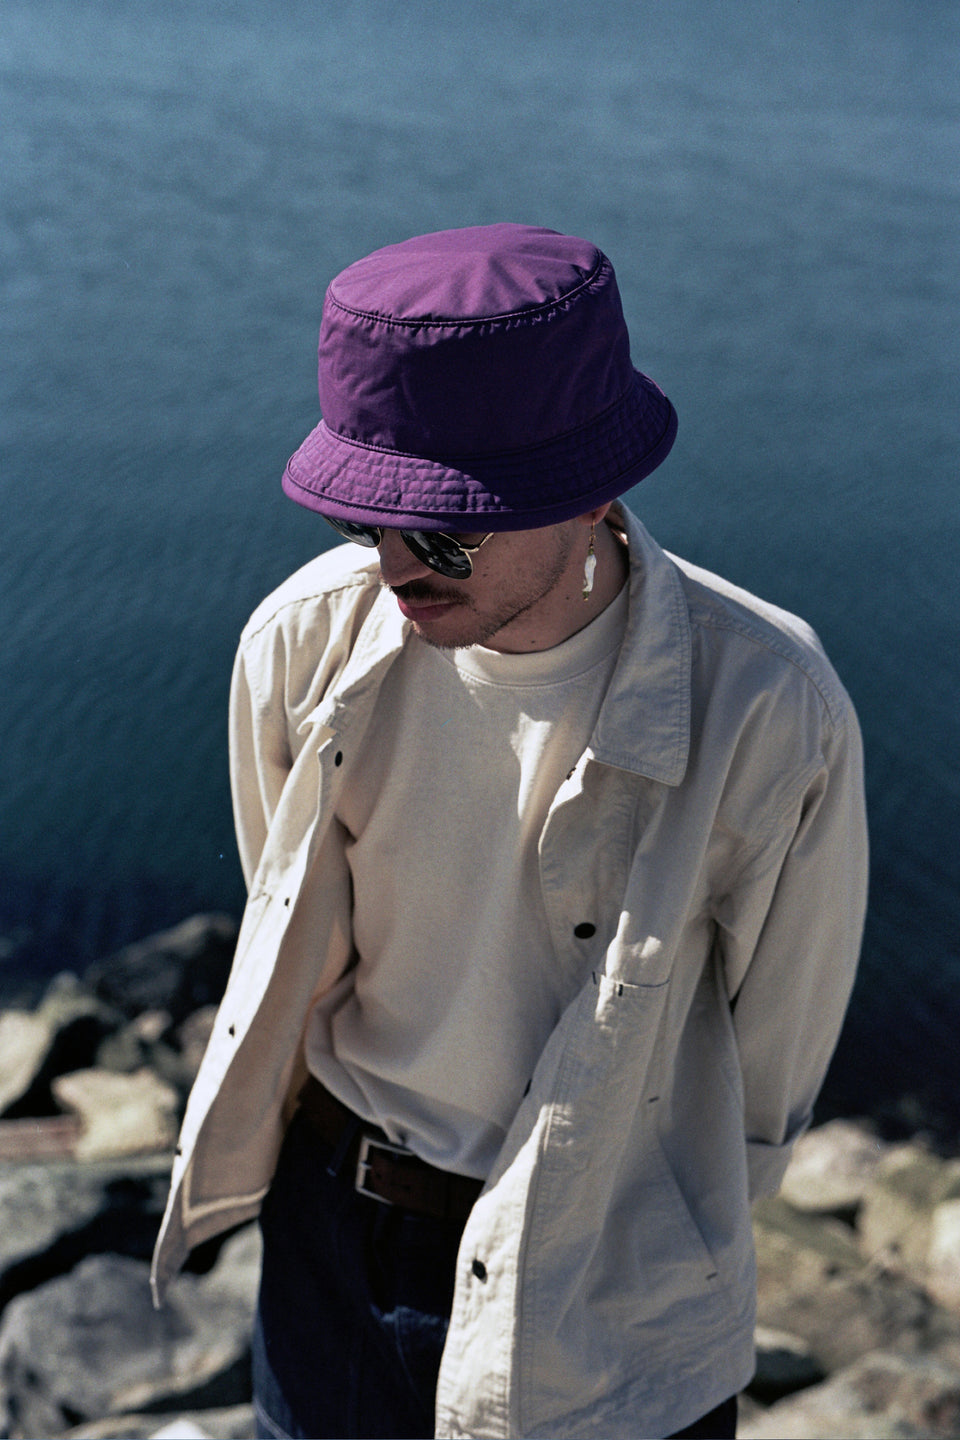 Found Feather SS21 Packable Boonie Crusher Hat Toray Purple Calculus Victoria BC Canada